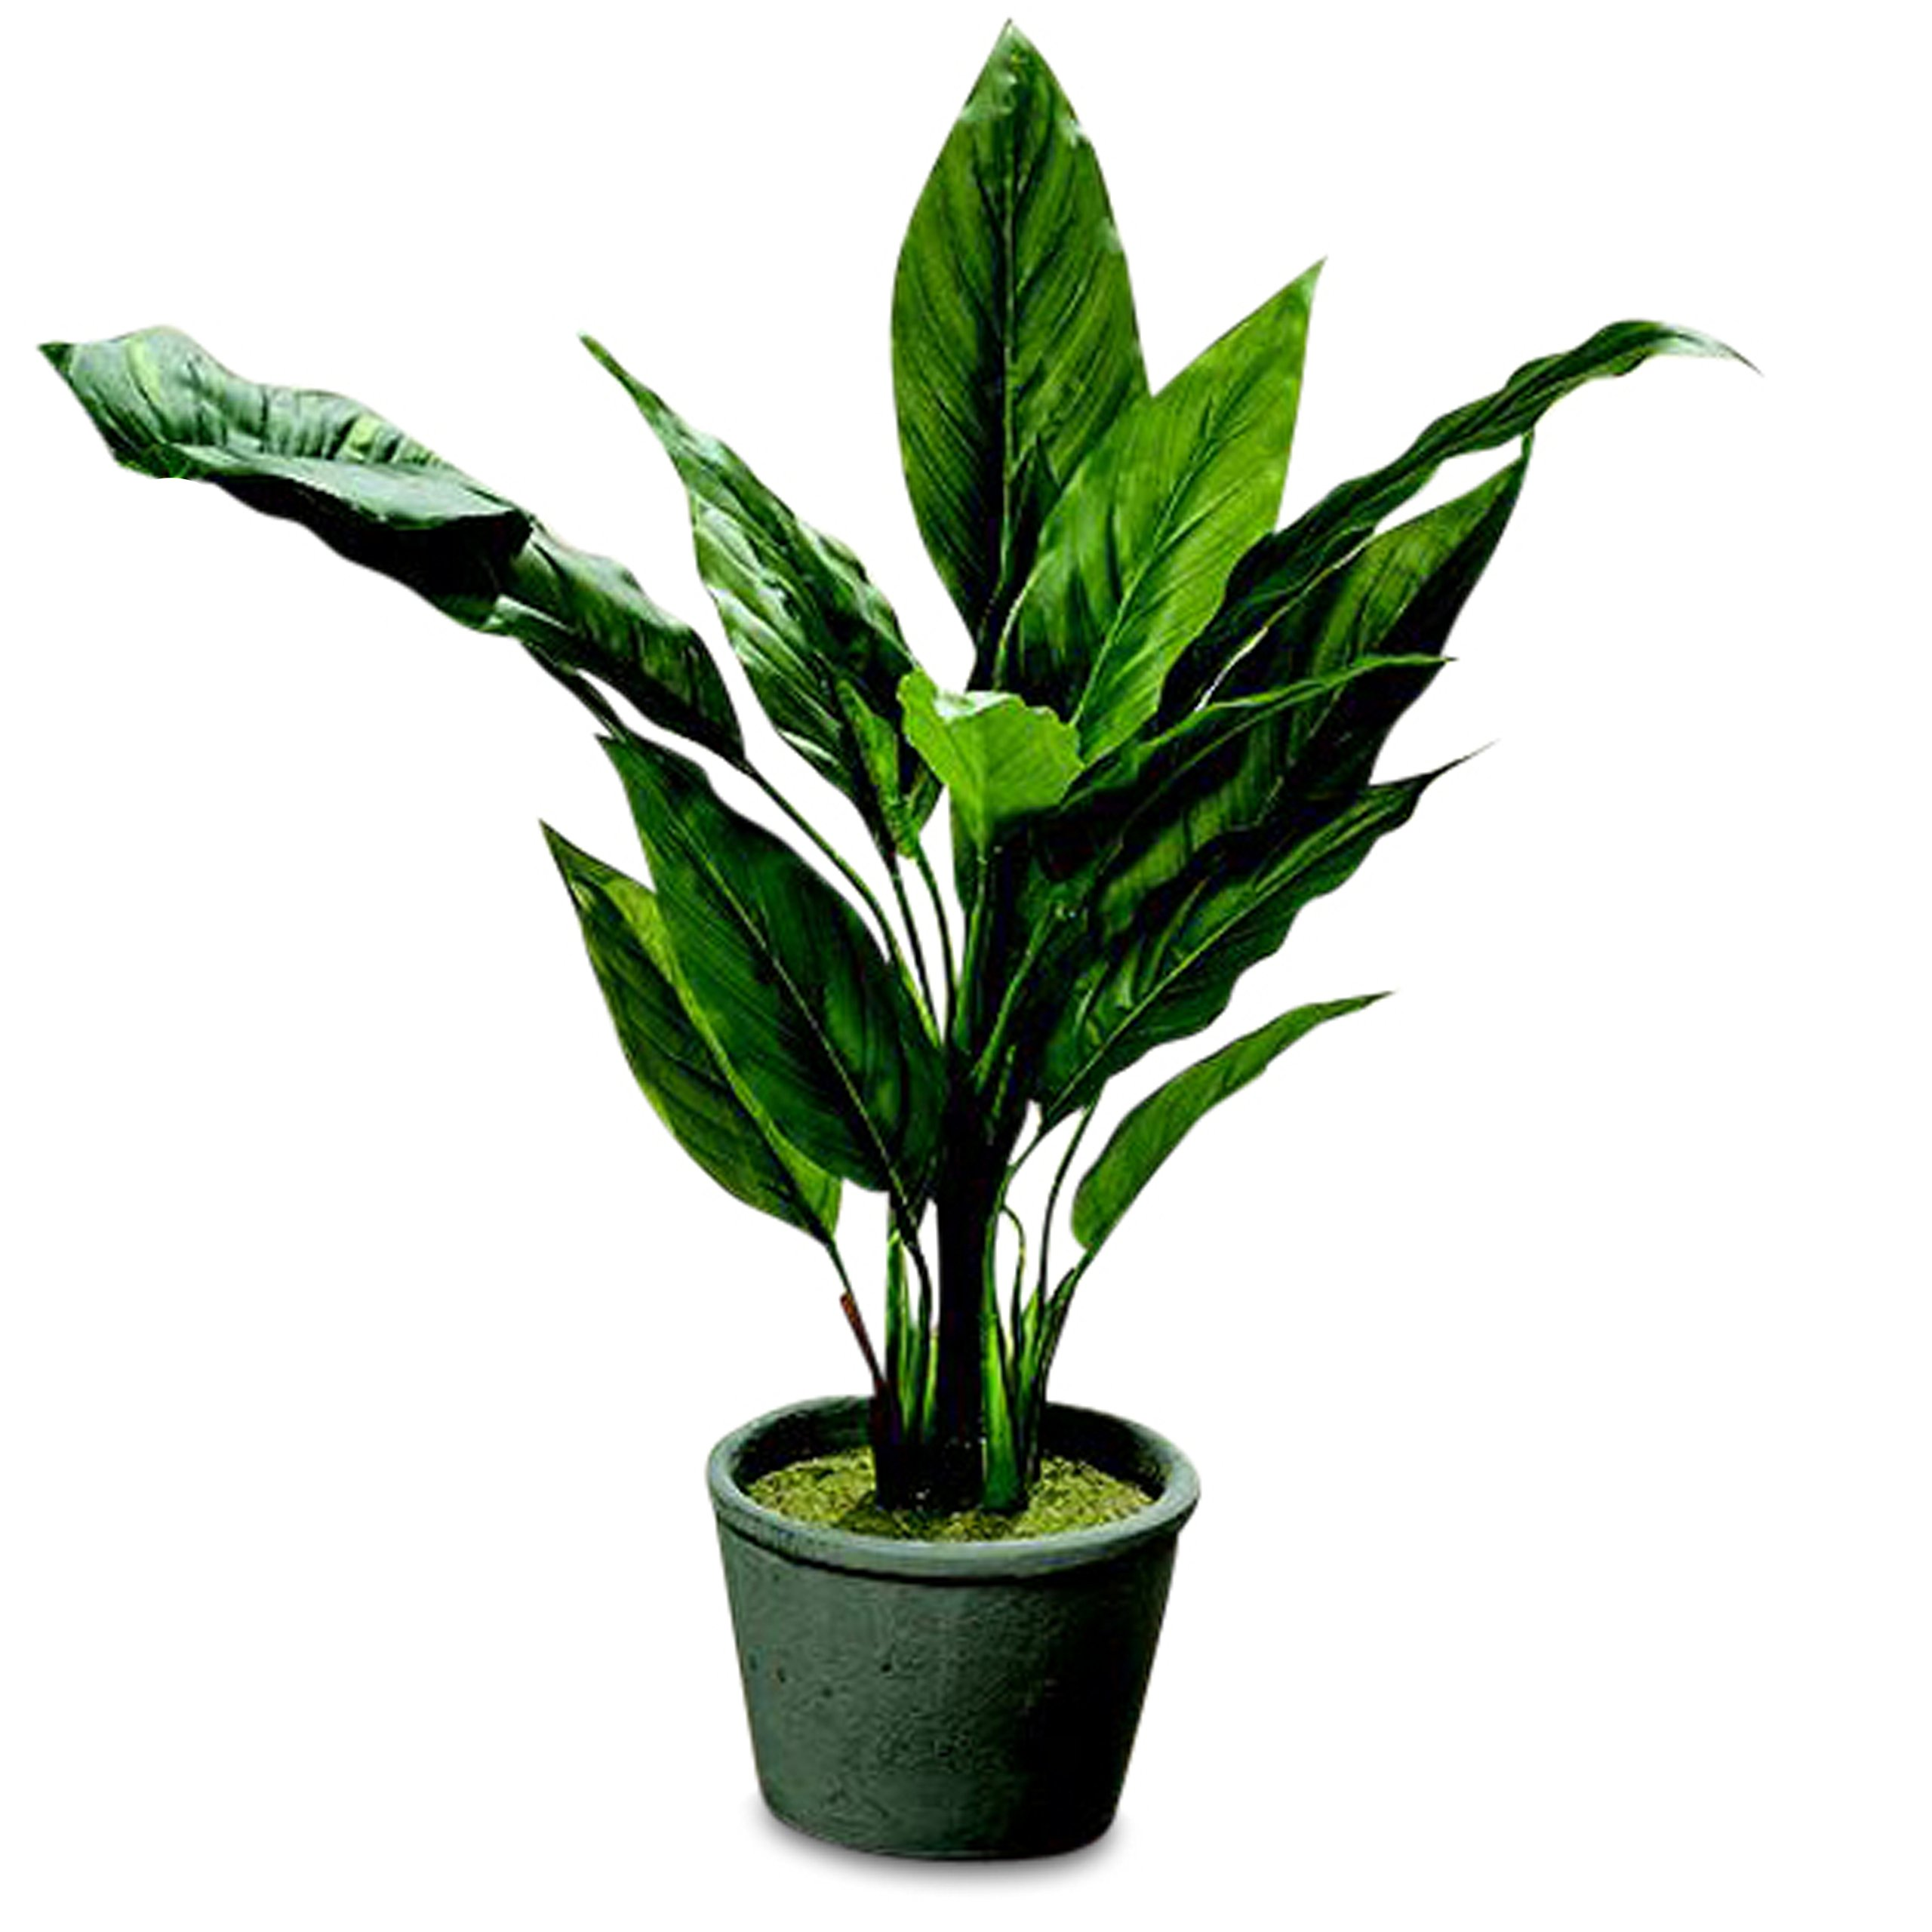 The Realistic Tropical House Plant in a Pot, True to Life Spathiphyllum, Stems and Leaves, Green Growers Pot, Faux Silk, Dirt Covered With Moss, Over 1 Ft Tall (13 3/4 Inches)